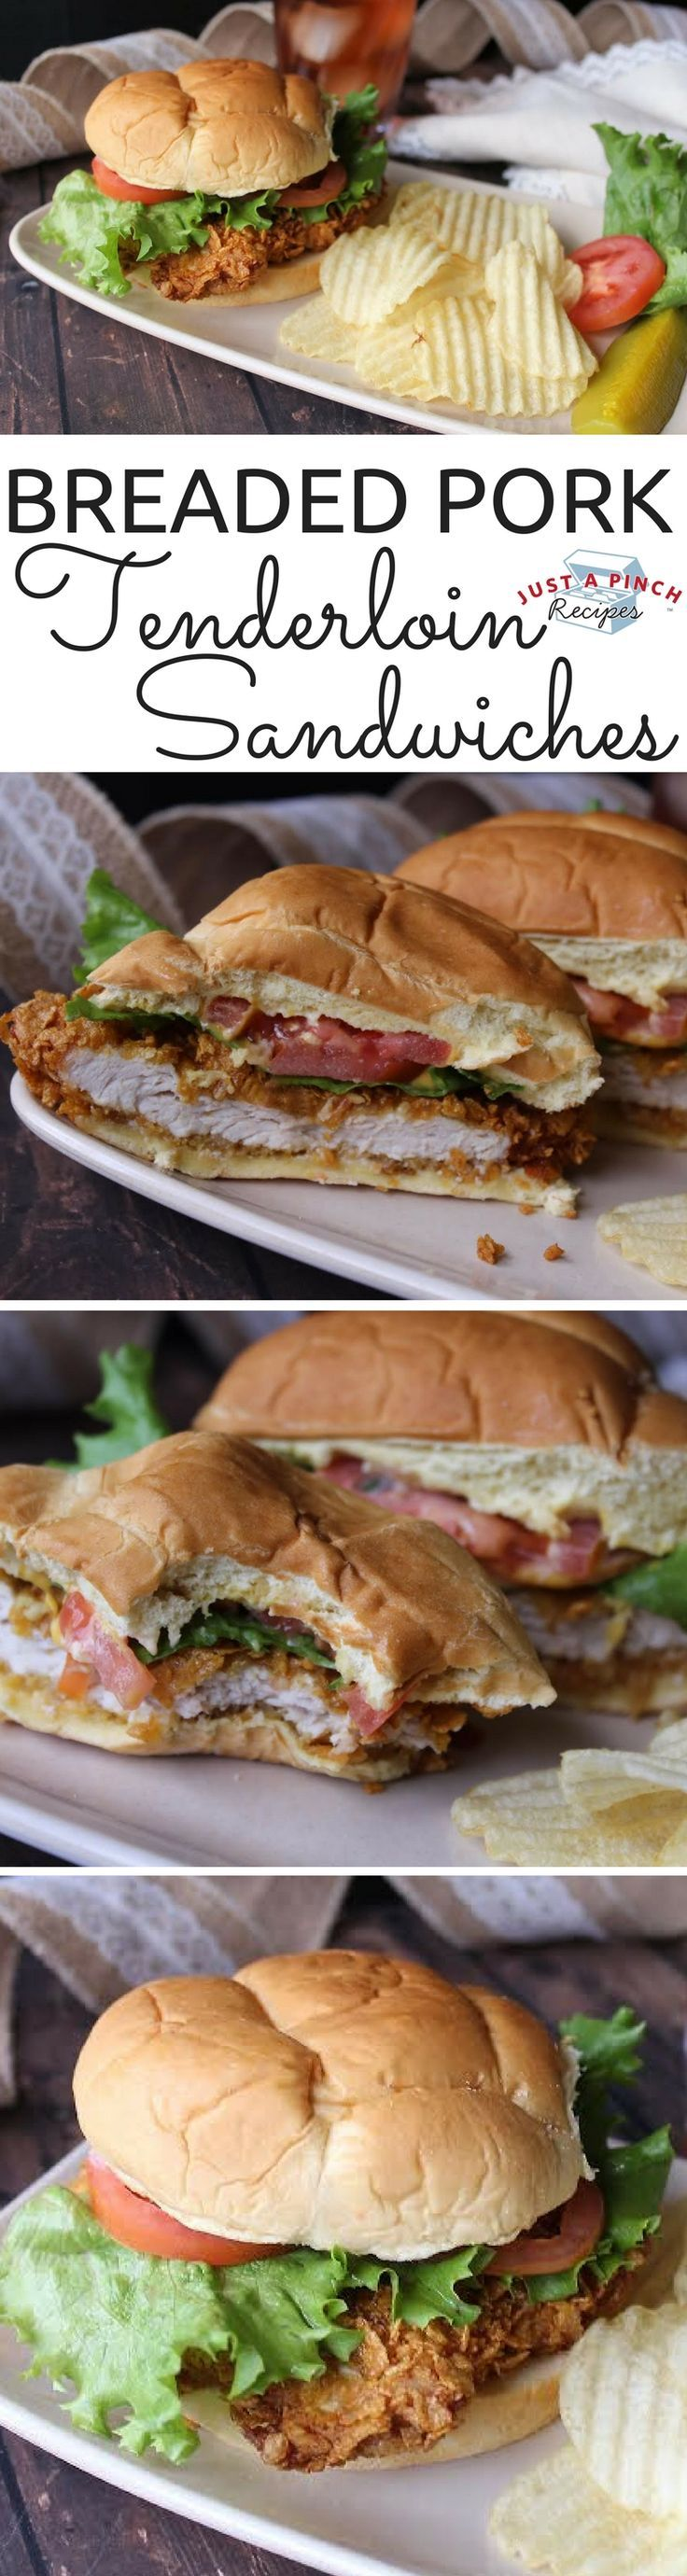 "Breaded Pork Tenderloin Sandwiches | ""OMG!!I tried this recipe and it was the bomb it will be a family favorite and be made weekly it was soo tender and flavorful!"""